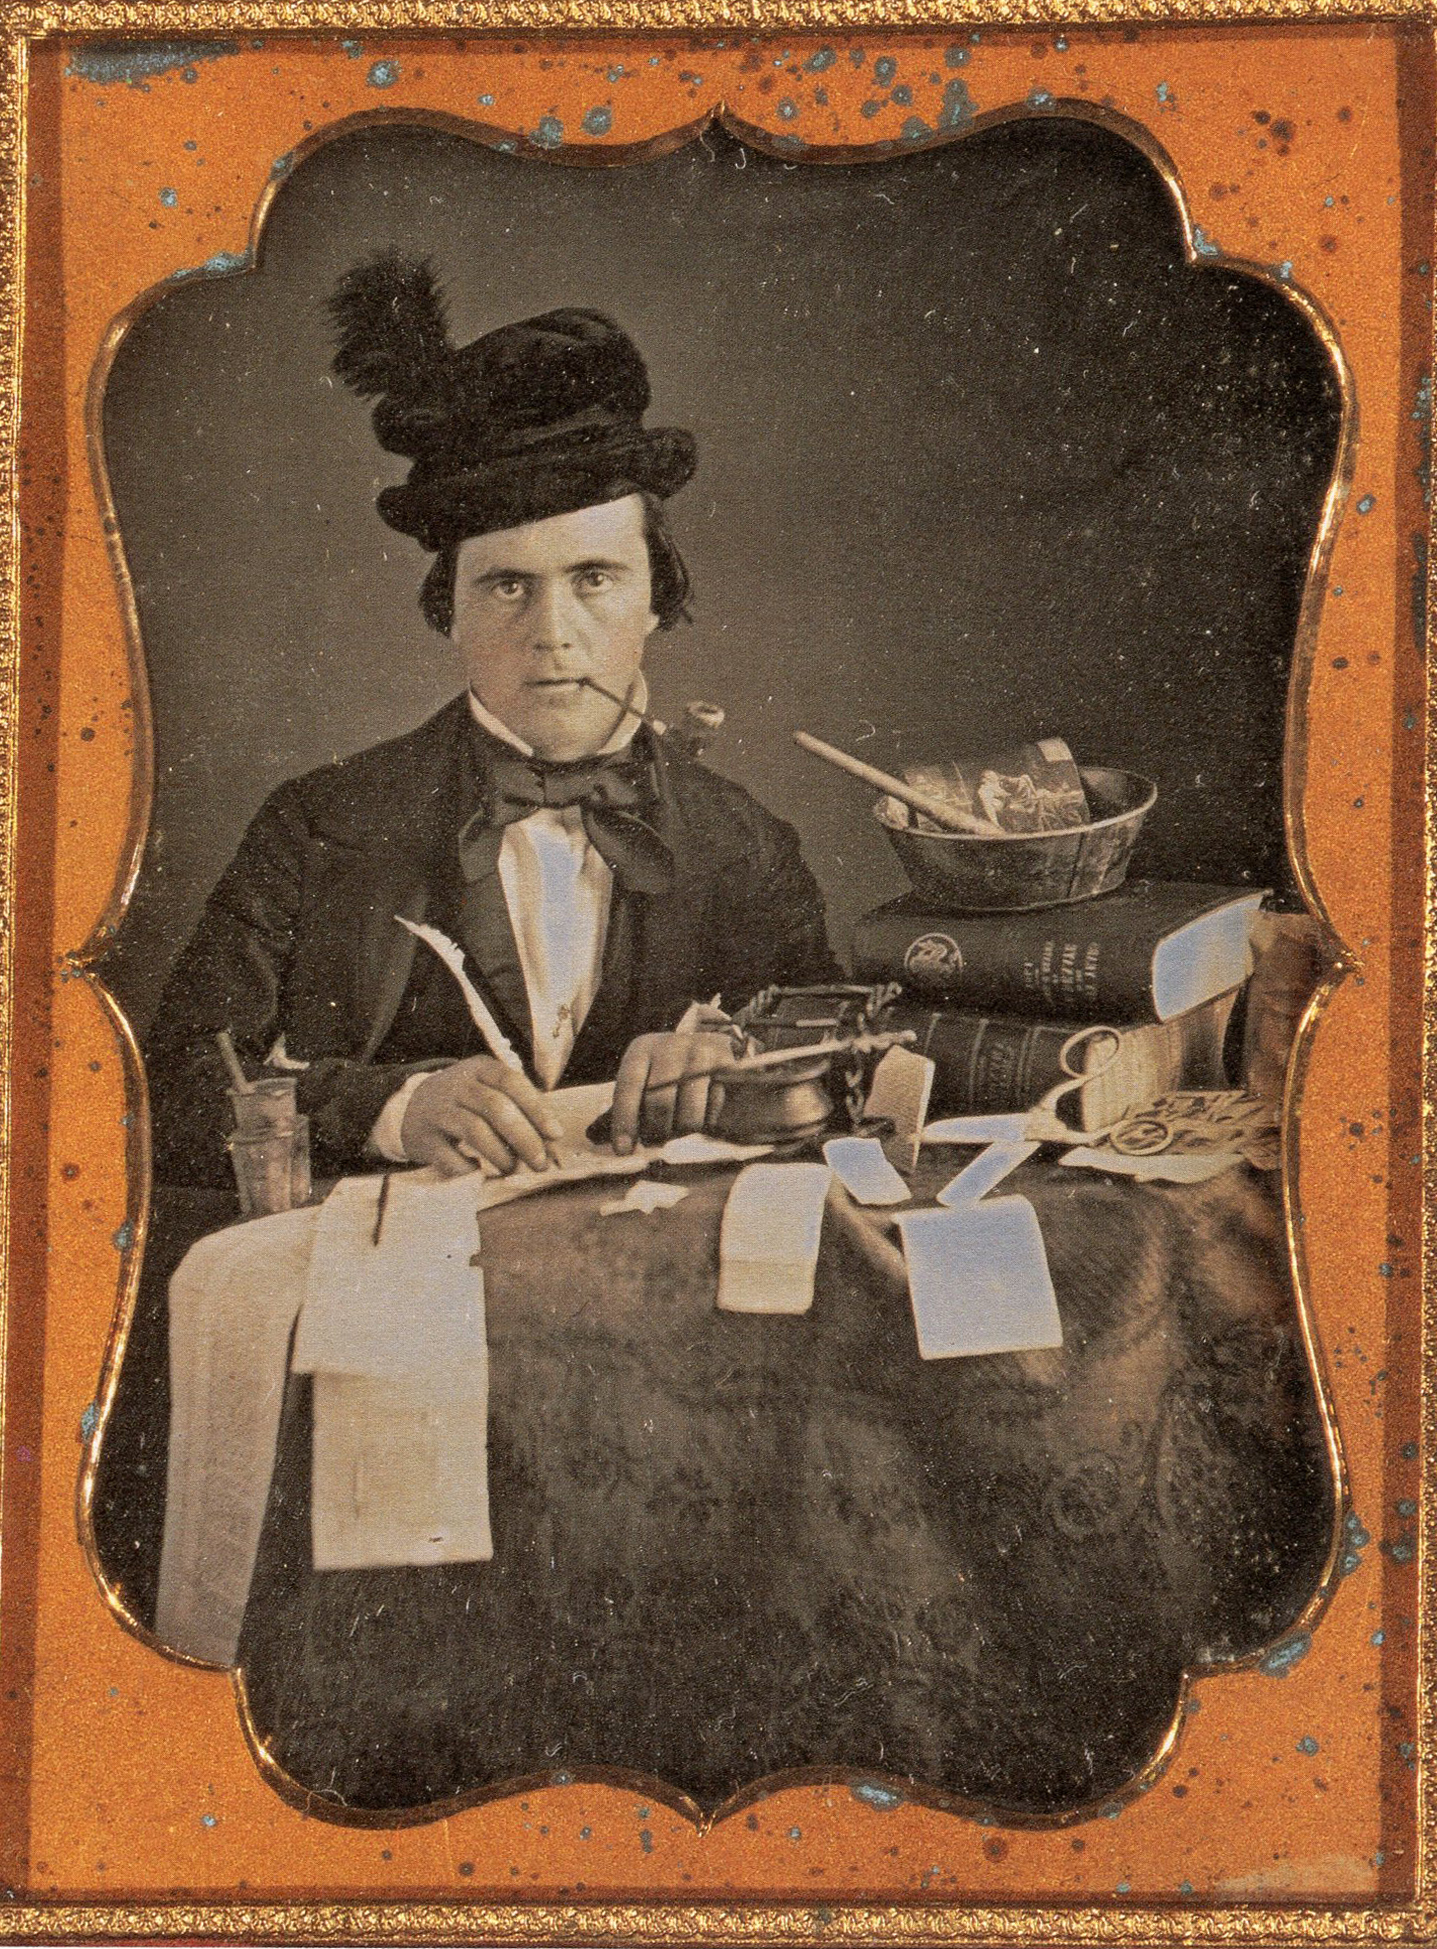 Anonymous Ambrotype from the late 1800's